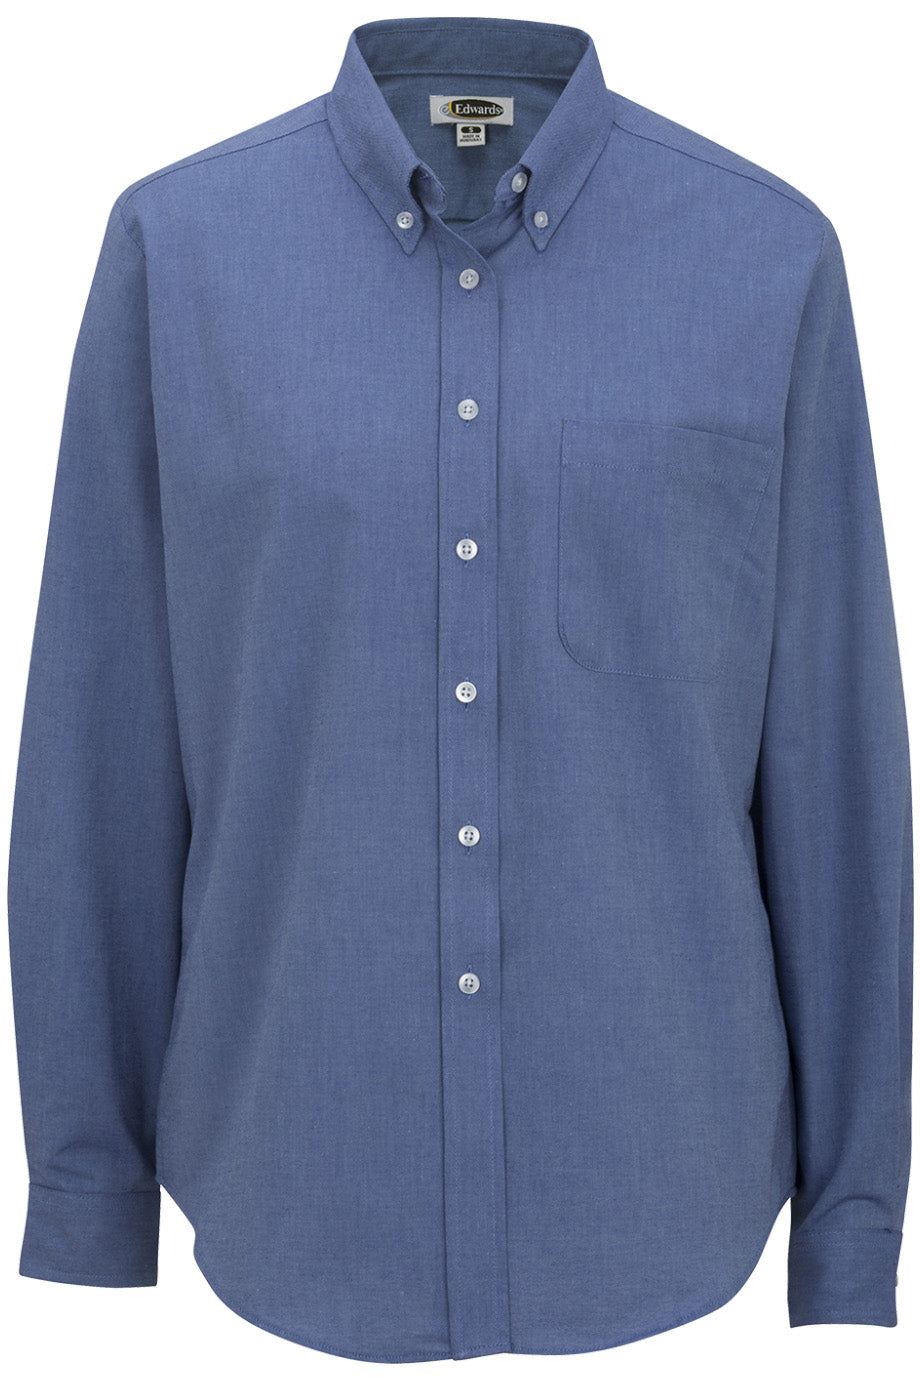 Edwards Ladies Long Sleeve Oxford Shirt